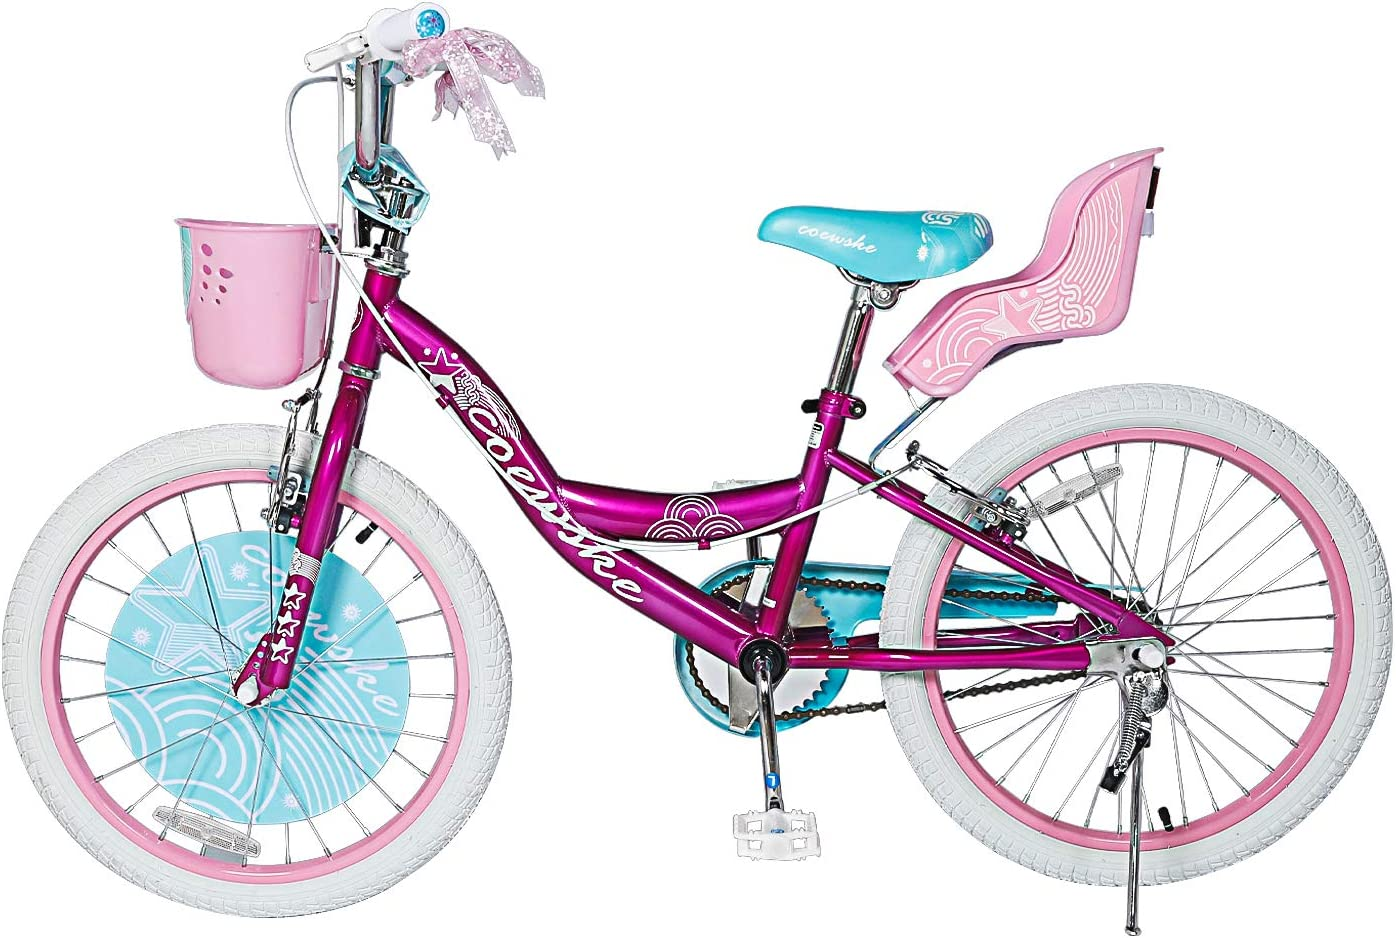 Kids Bike 12 14 16 Inch Boys Girls Bike with Training Wheels 18 20 Inch Kids Bicycle with Hand Brake and Kickstand for Toddlers and Children